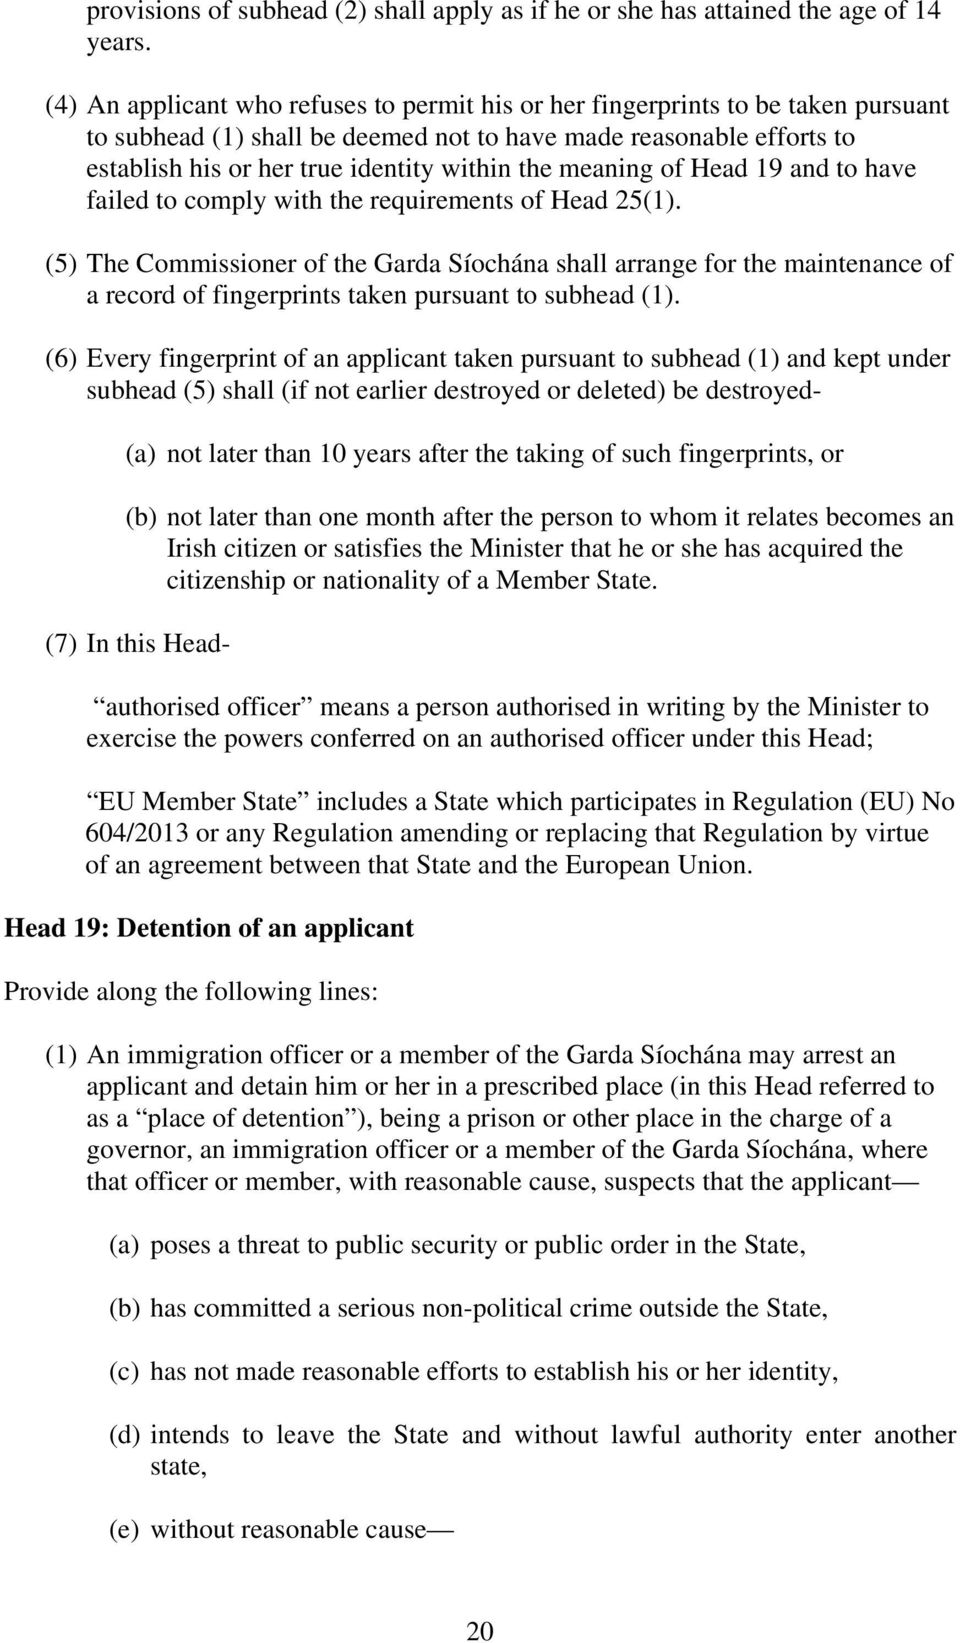 meaning of Head 19 and to have failed to comply with the requirements of Head 25(1).